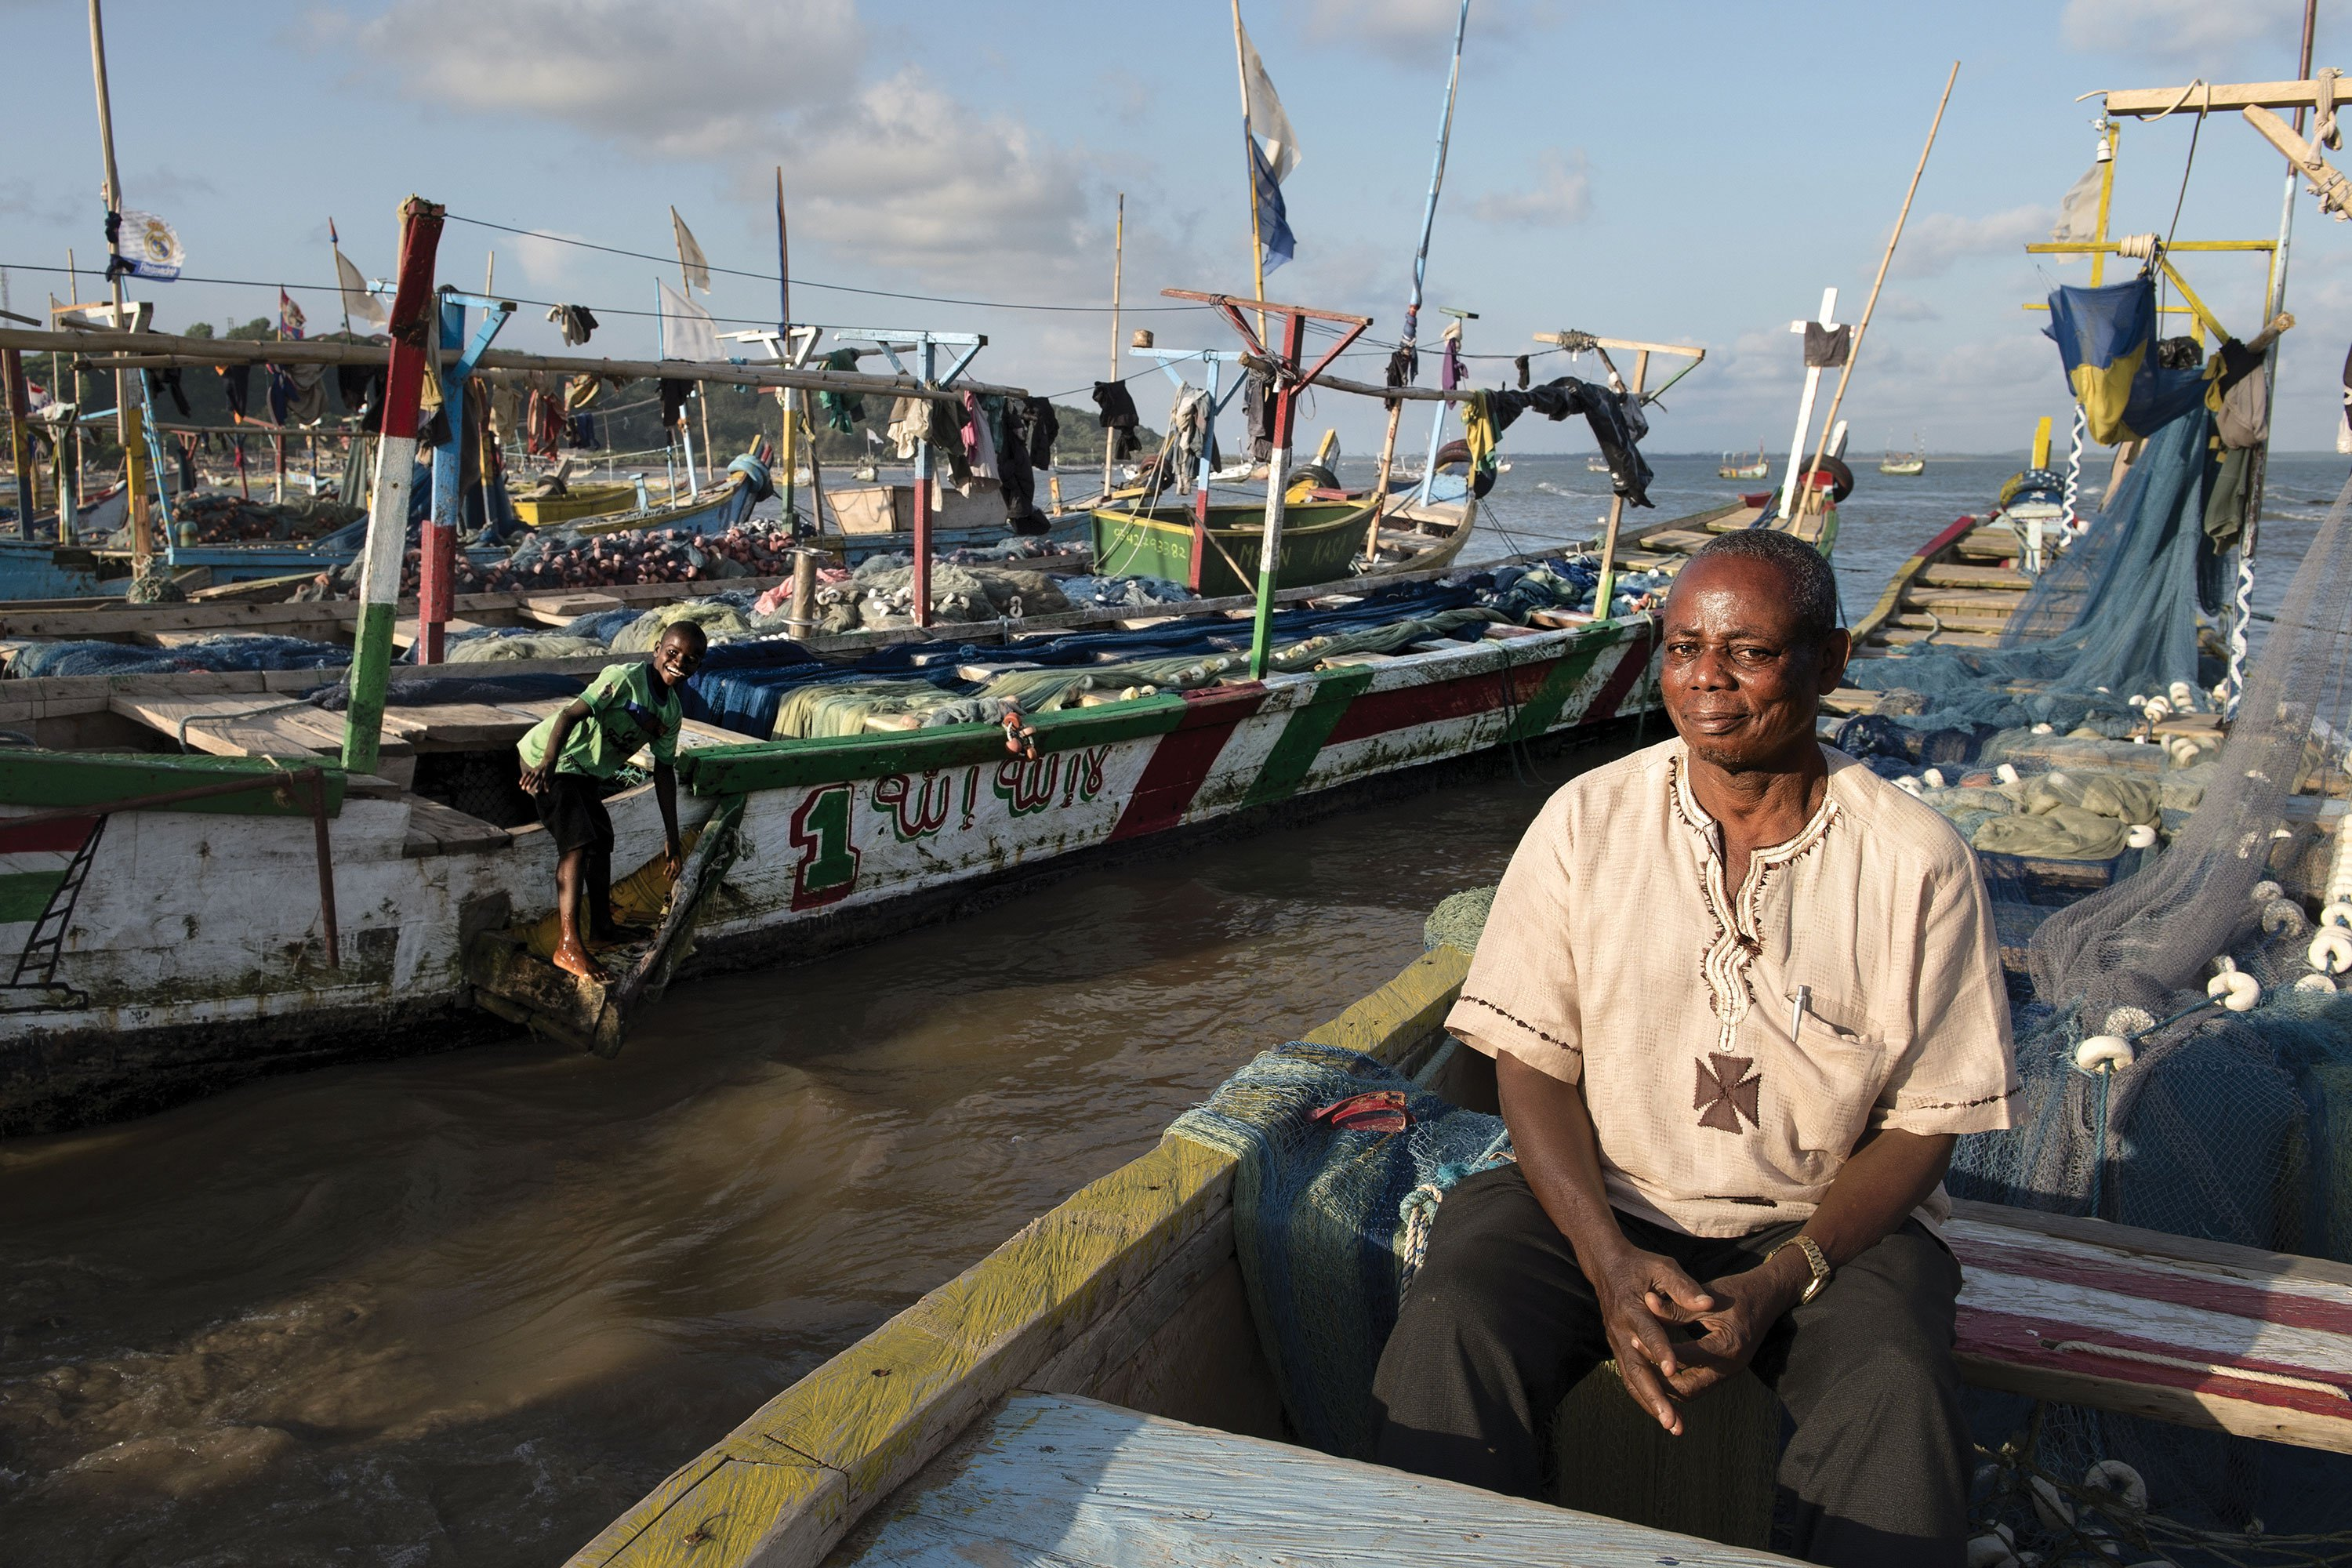 Kojo Kondua is the chief of the Abuesi fishing village in Ghana. Members of his community participated in a campaign pushing the government to allocate oil and gas revenues to programs that assist small-scale fishing families and farmers, which are the backbone of Ghana's economy.